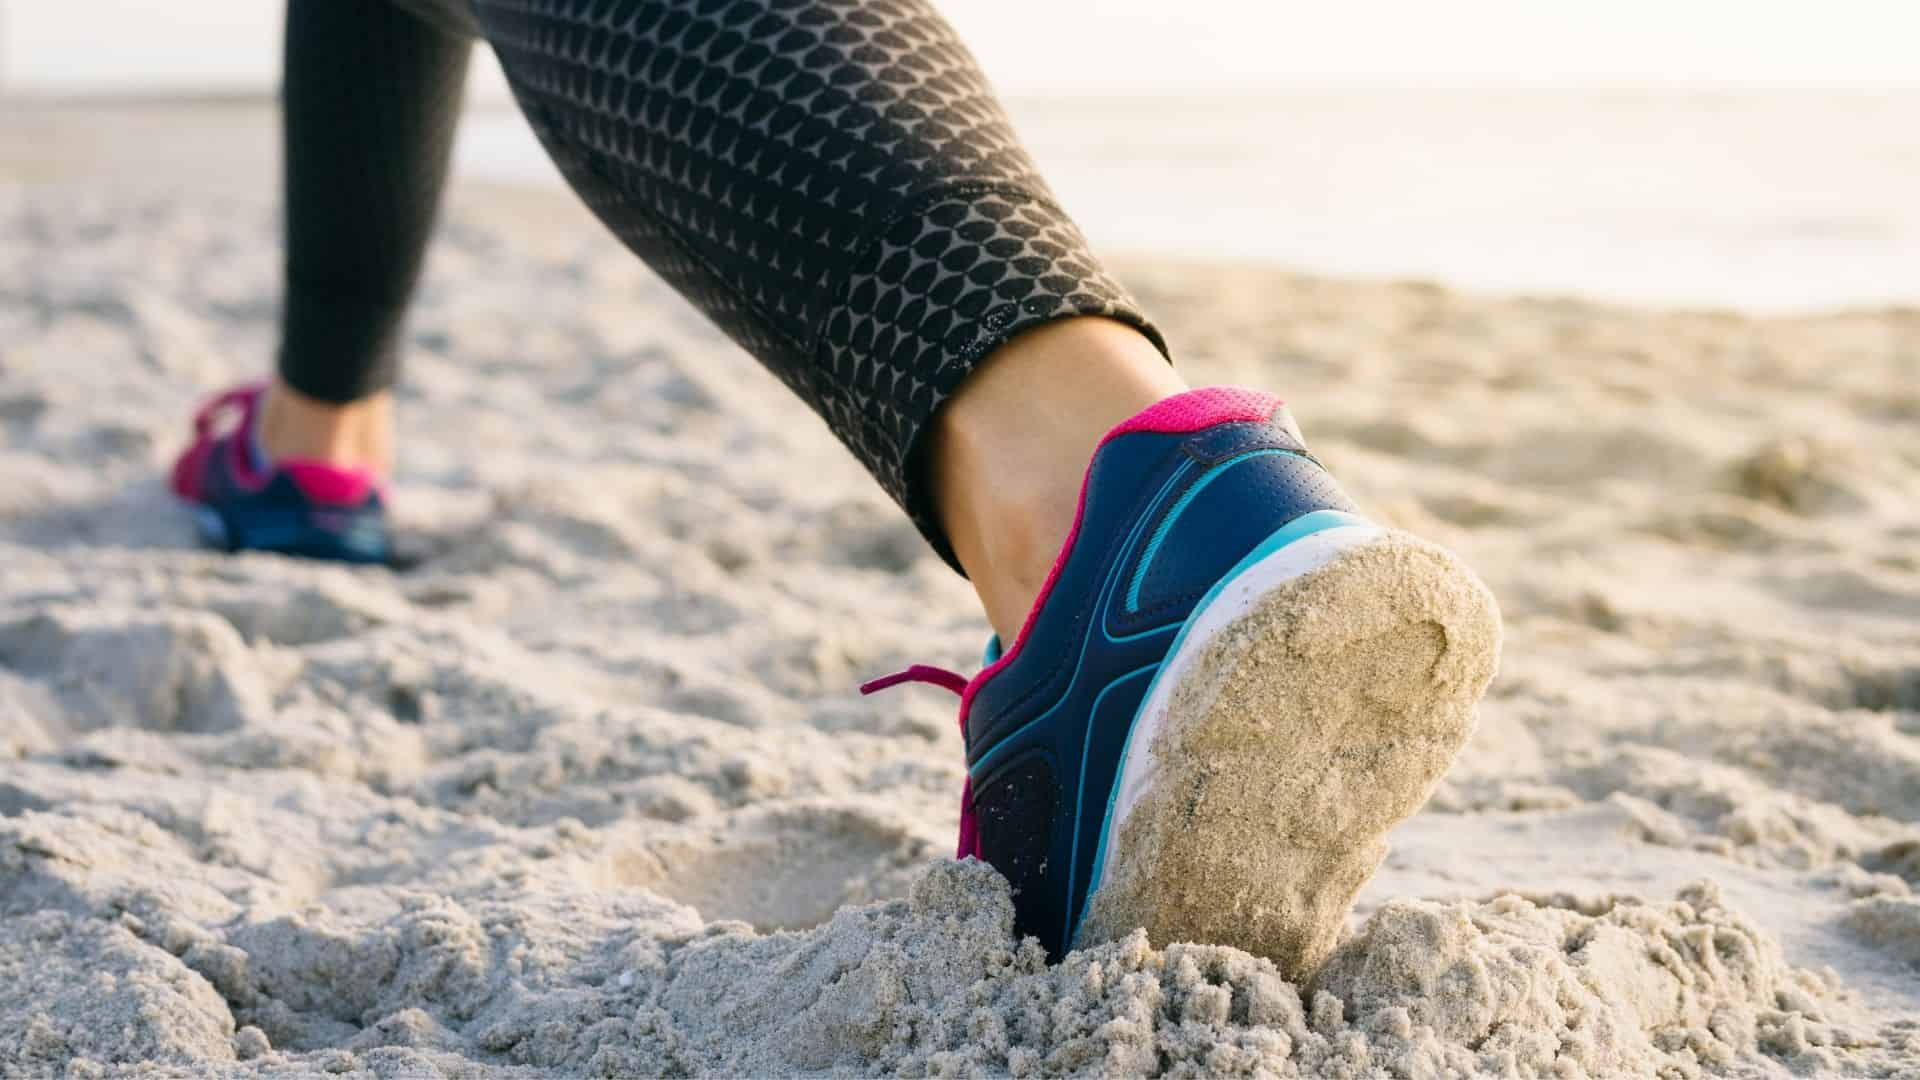 The Best Shoes for Beach Walking of 2020: Buyers Guide